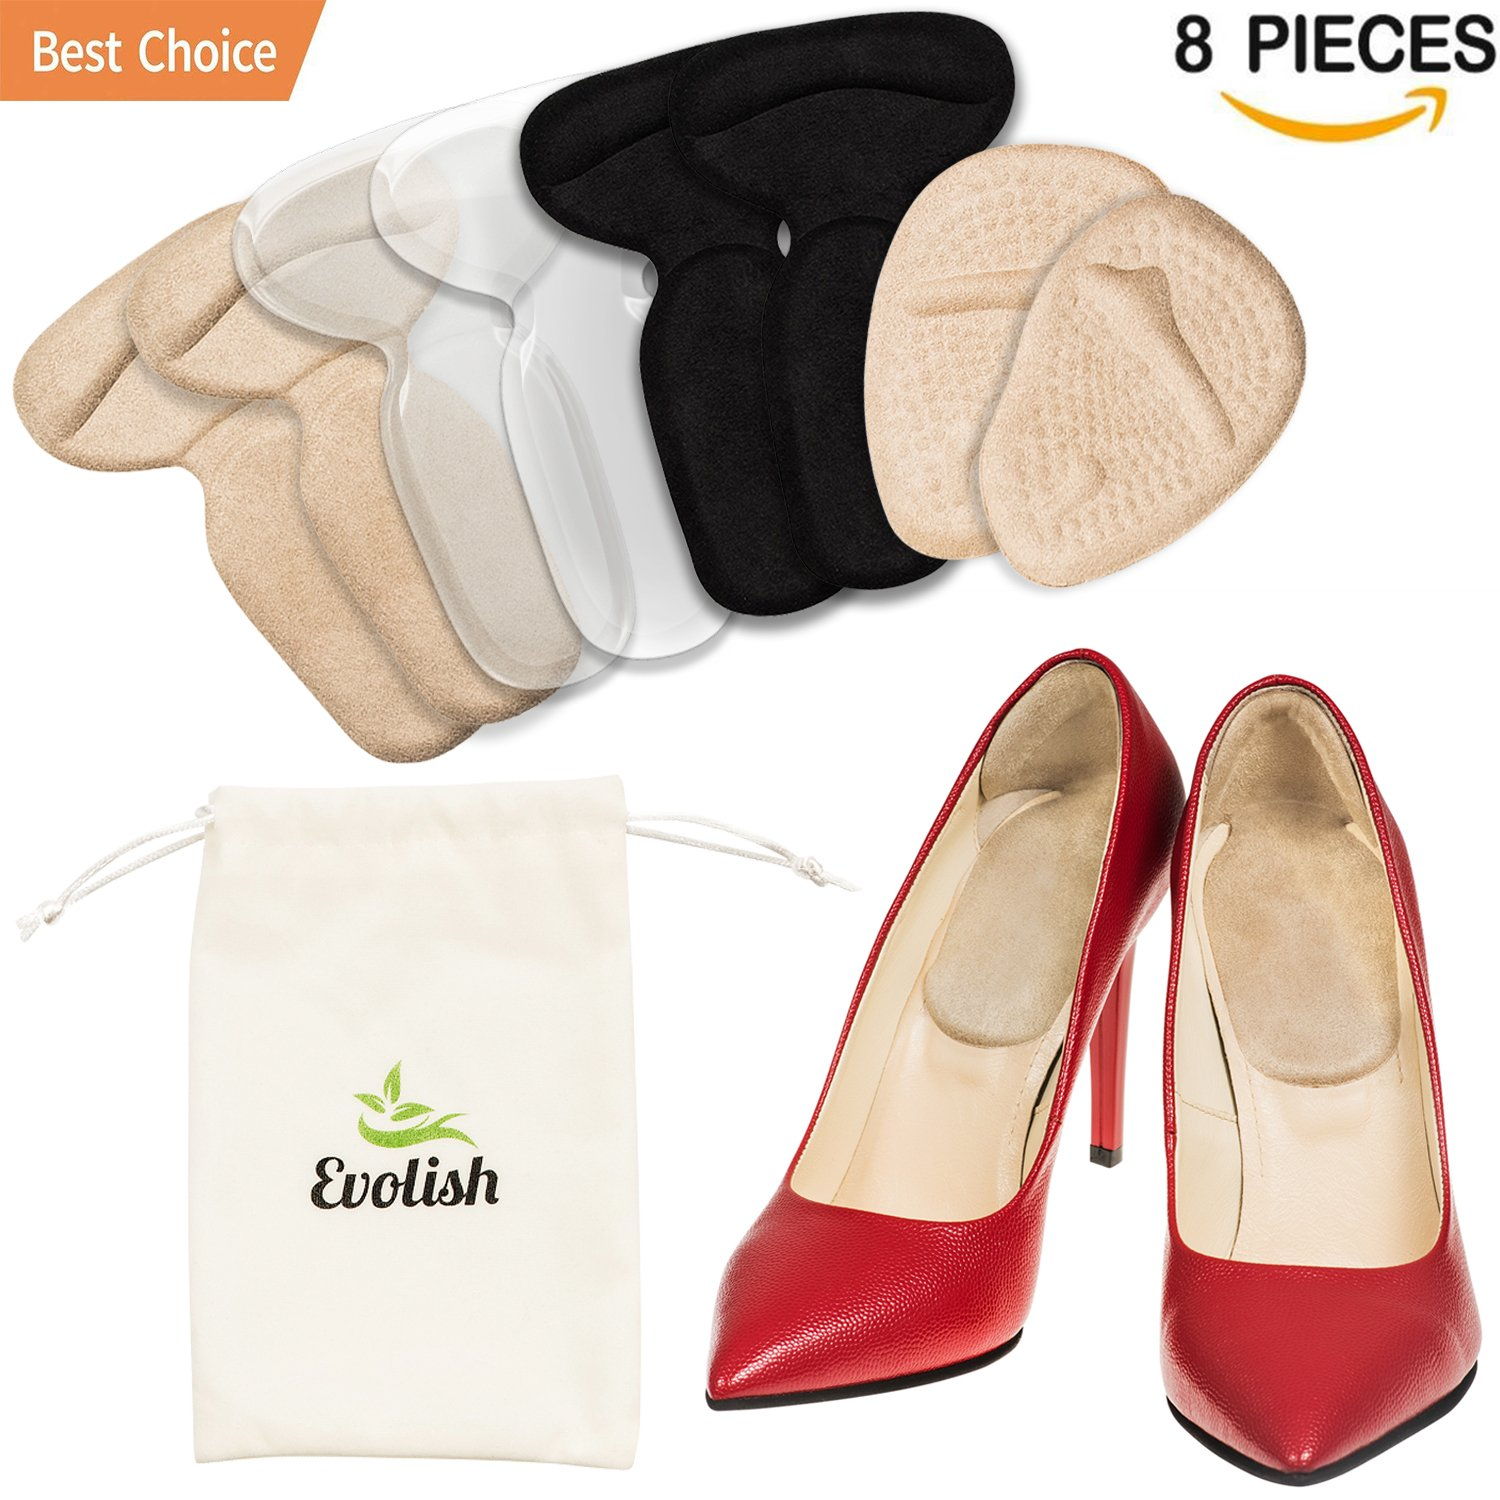 High Heel Cushion Inserts for Women (8 pcs) | High Heel Pads | High Heel Grips | Shoe Heel Liners Non Slip Shoe Filler for Too Big Shoes Heel Insoles for Blisters Pain Relief by Evolish (Mix)